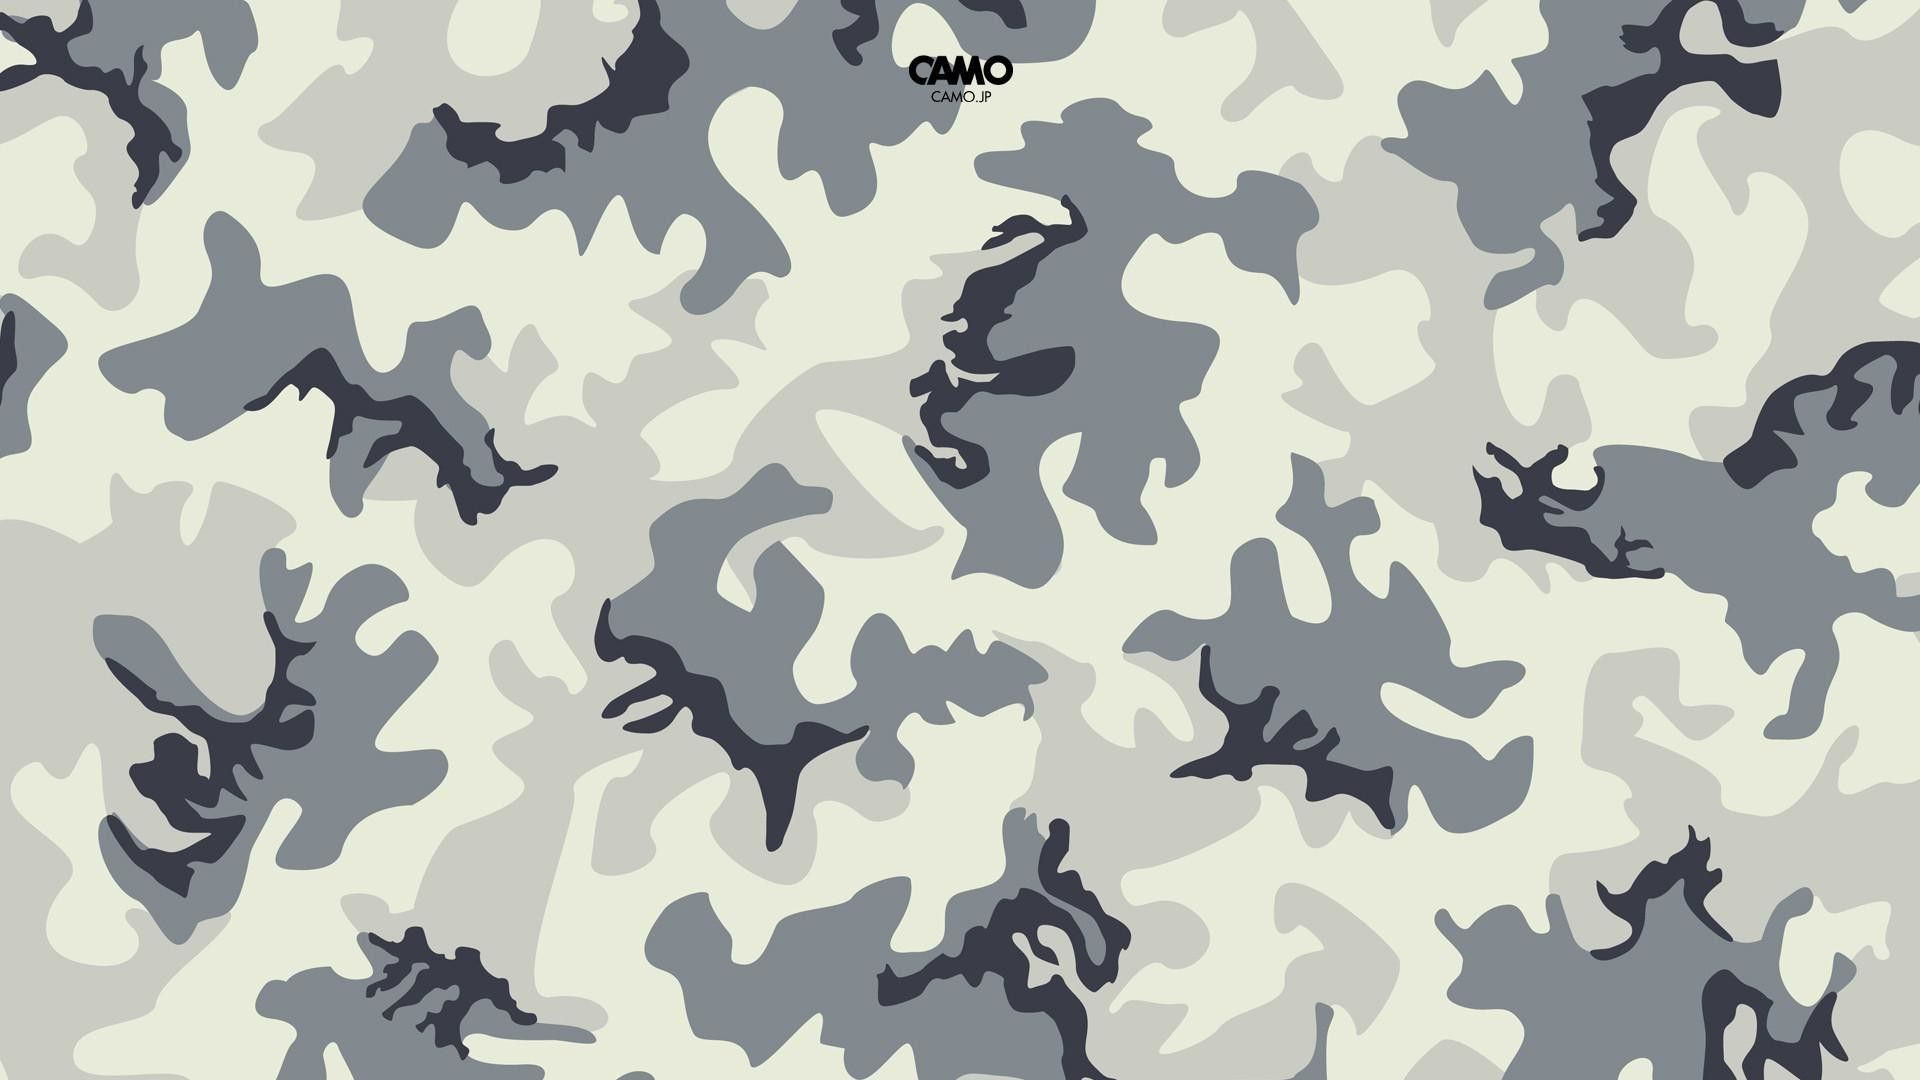 1920x1080 Camo Wallpapers (61+ images)